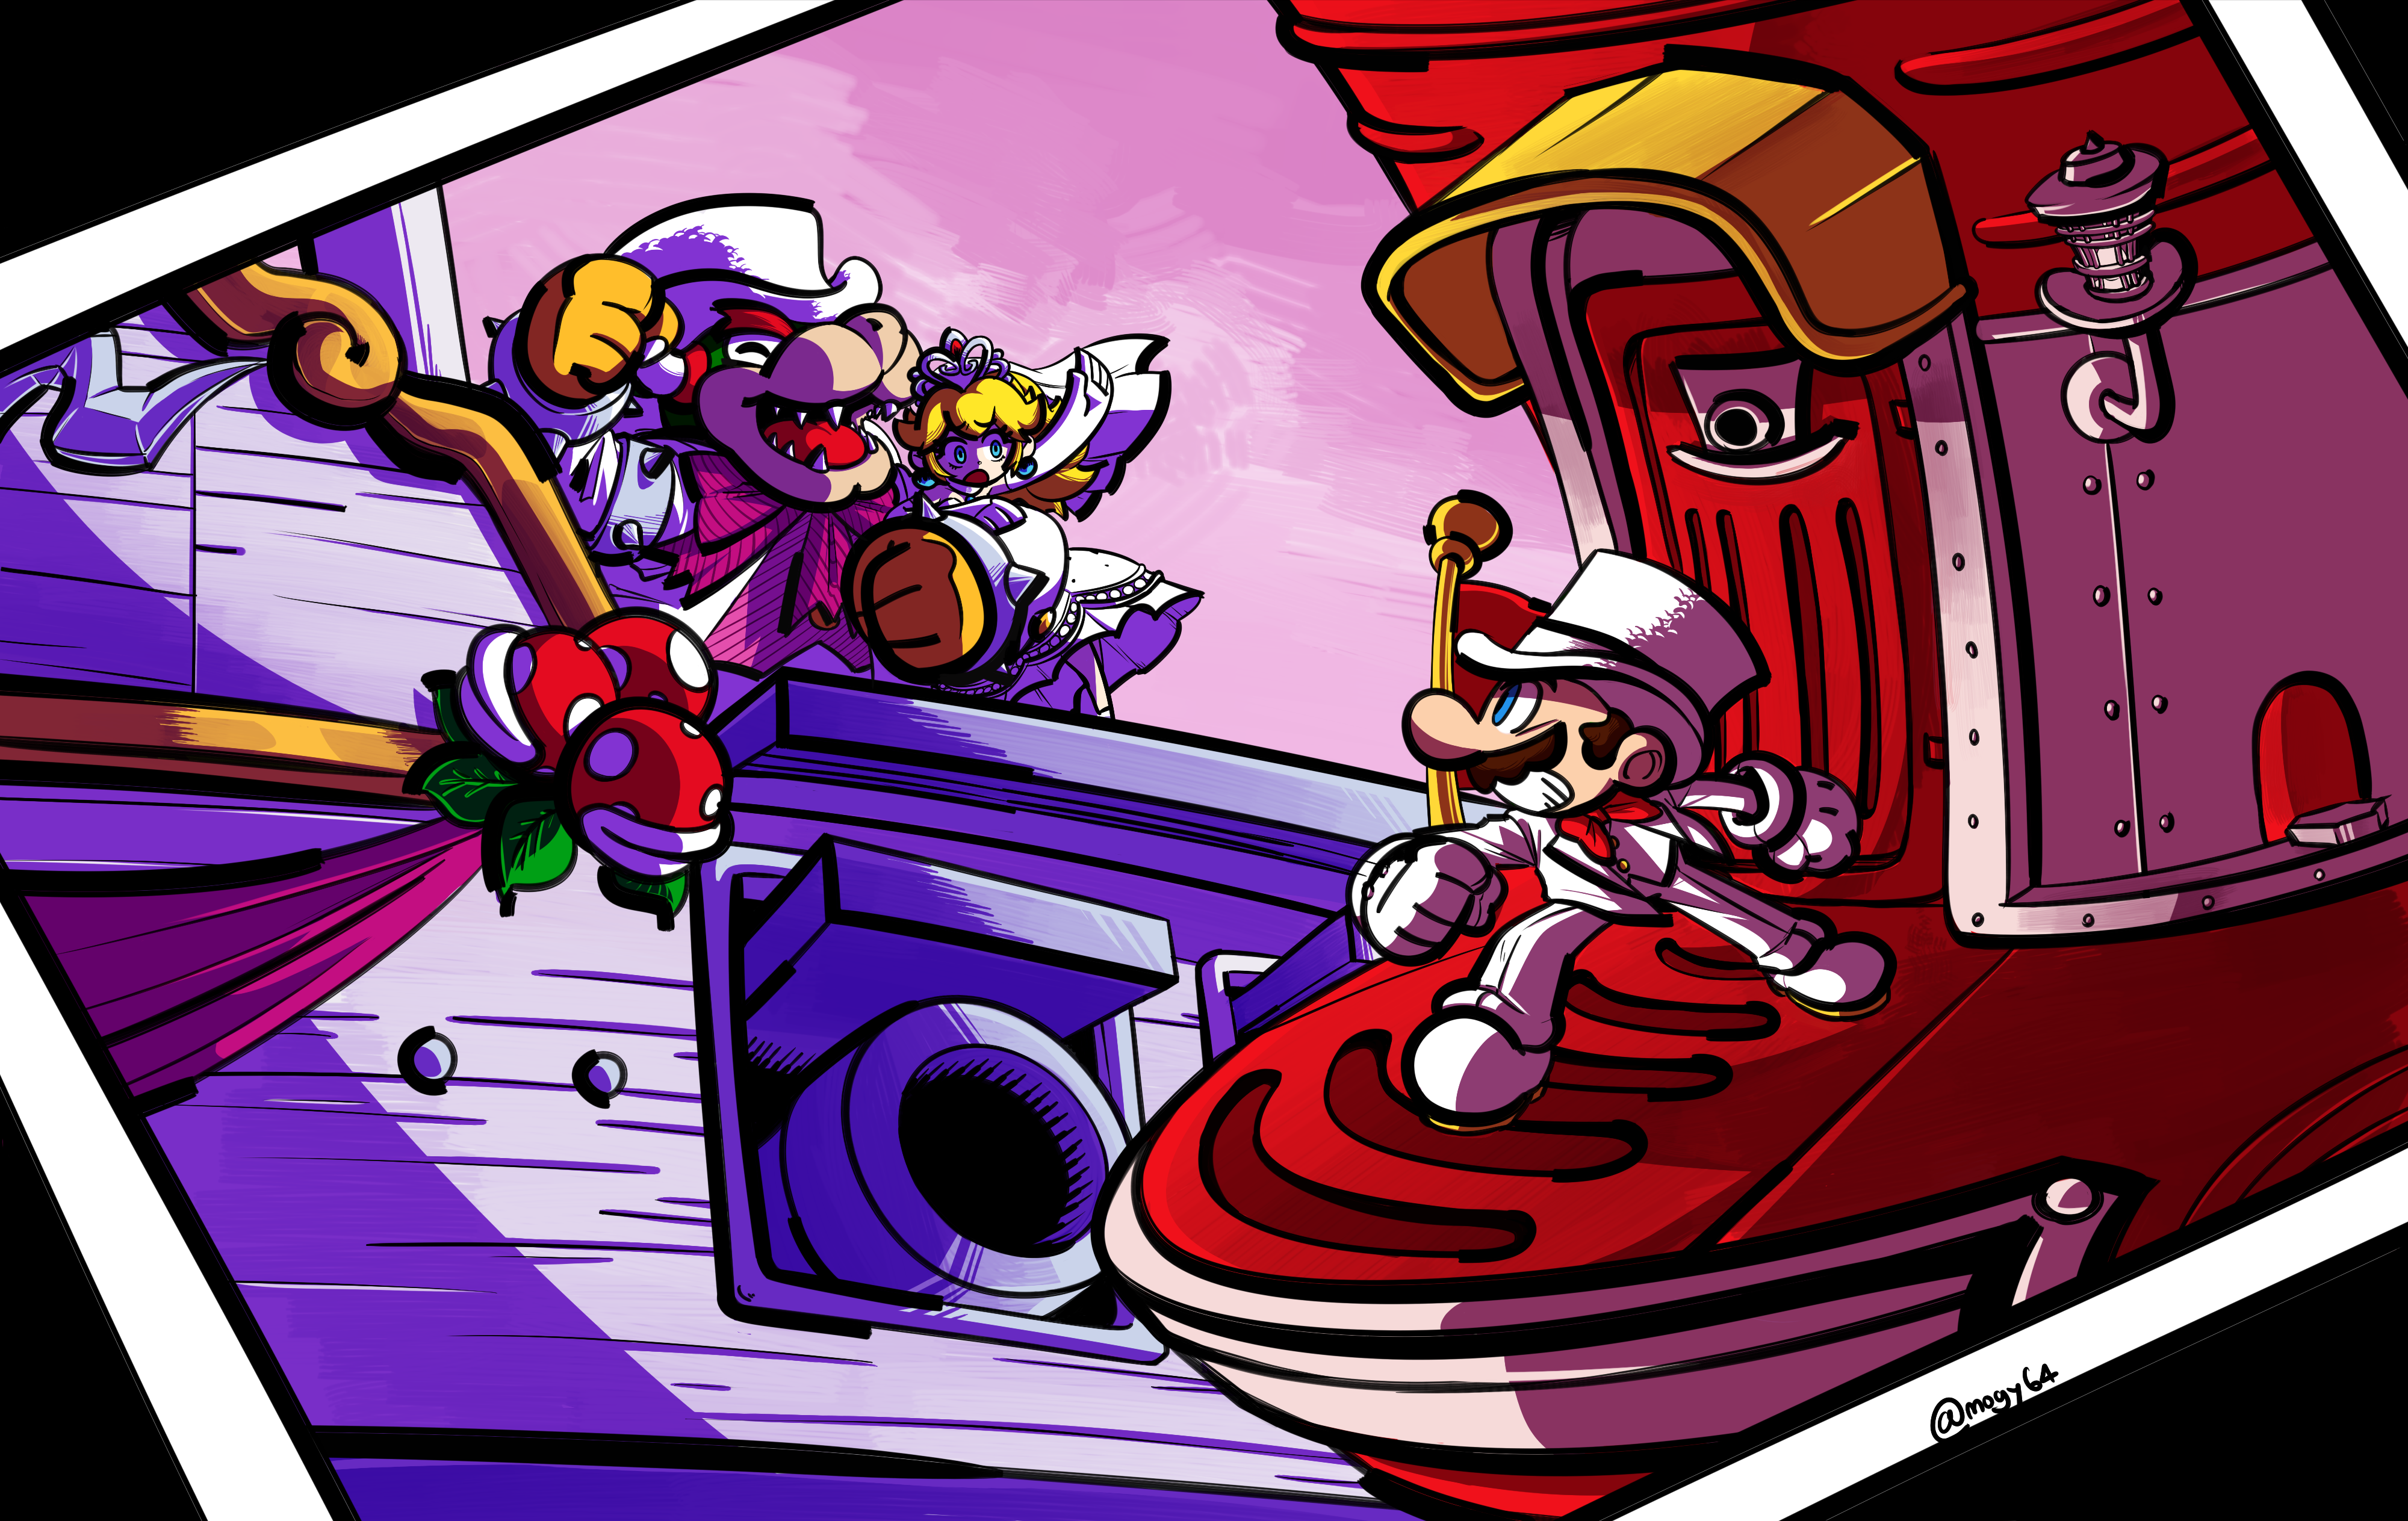 Yuga's Gallery of Nintendo Art (currently featuring: the Paper Mario series) 521777_mogy64_super-mario-odyssey